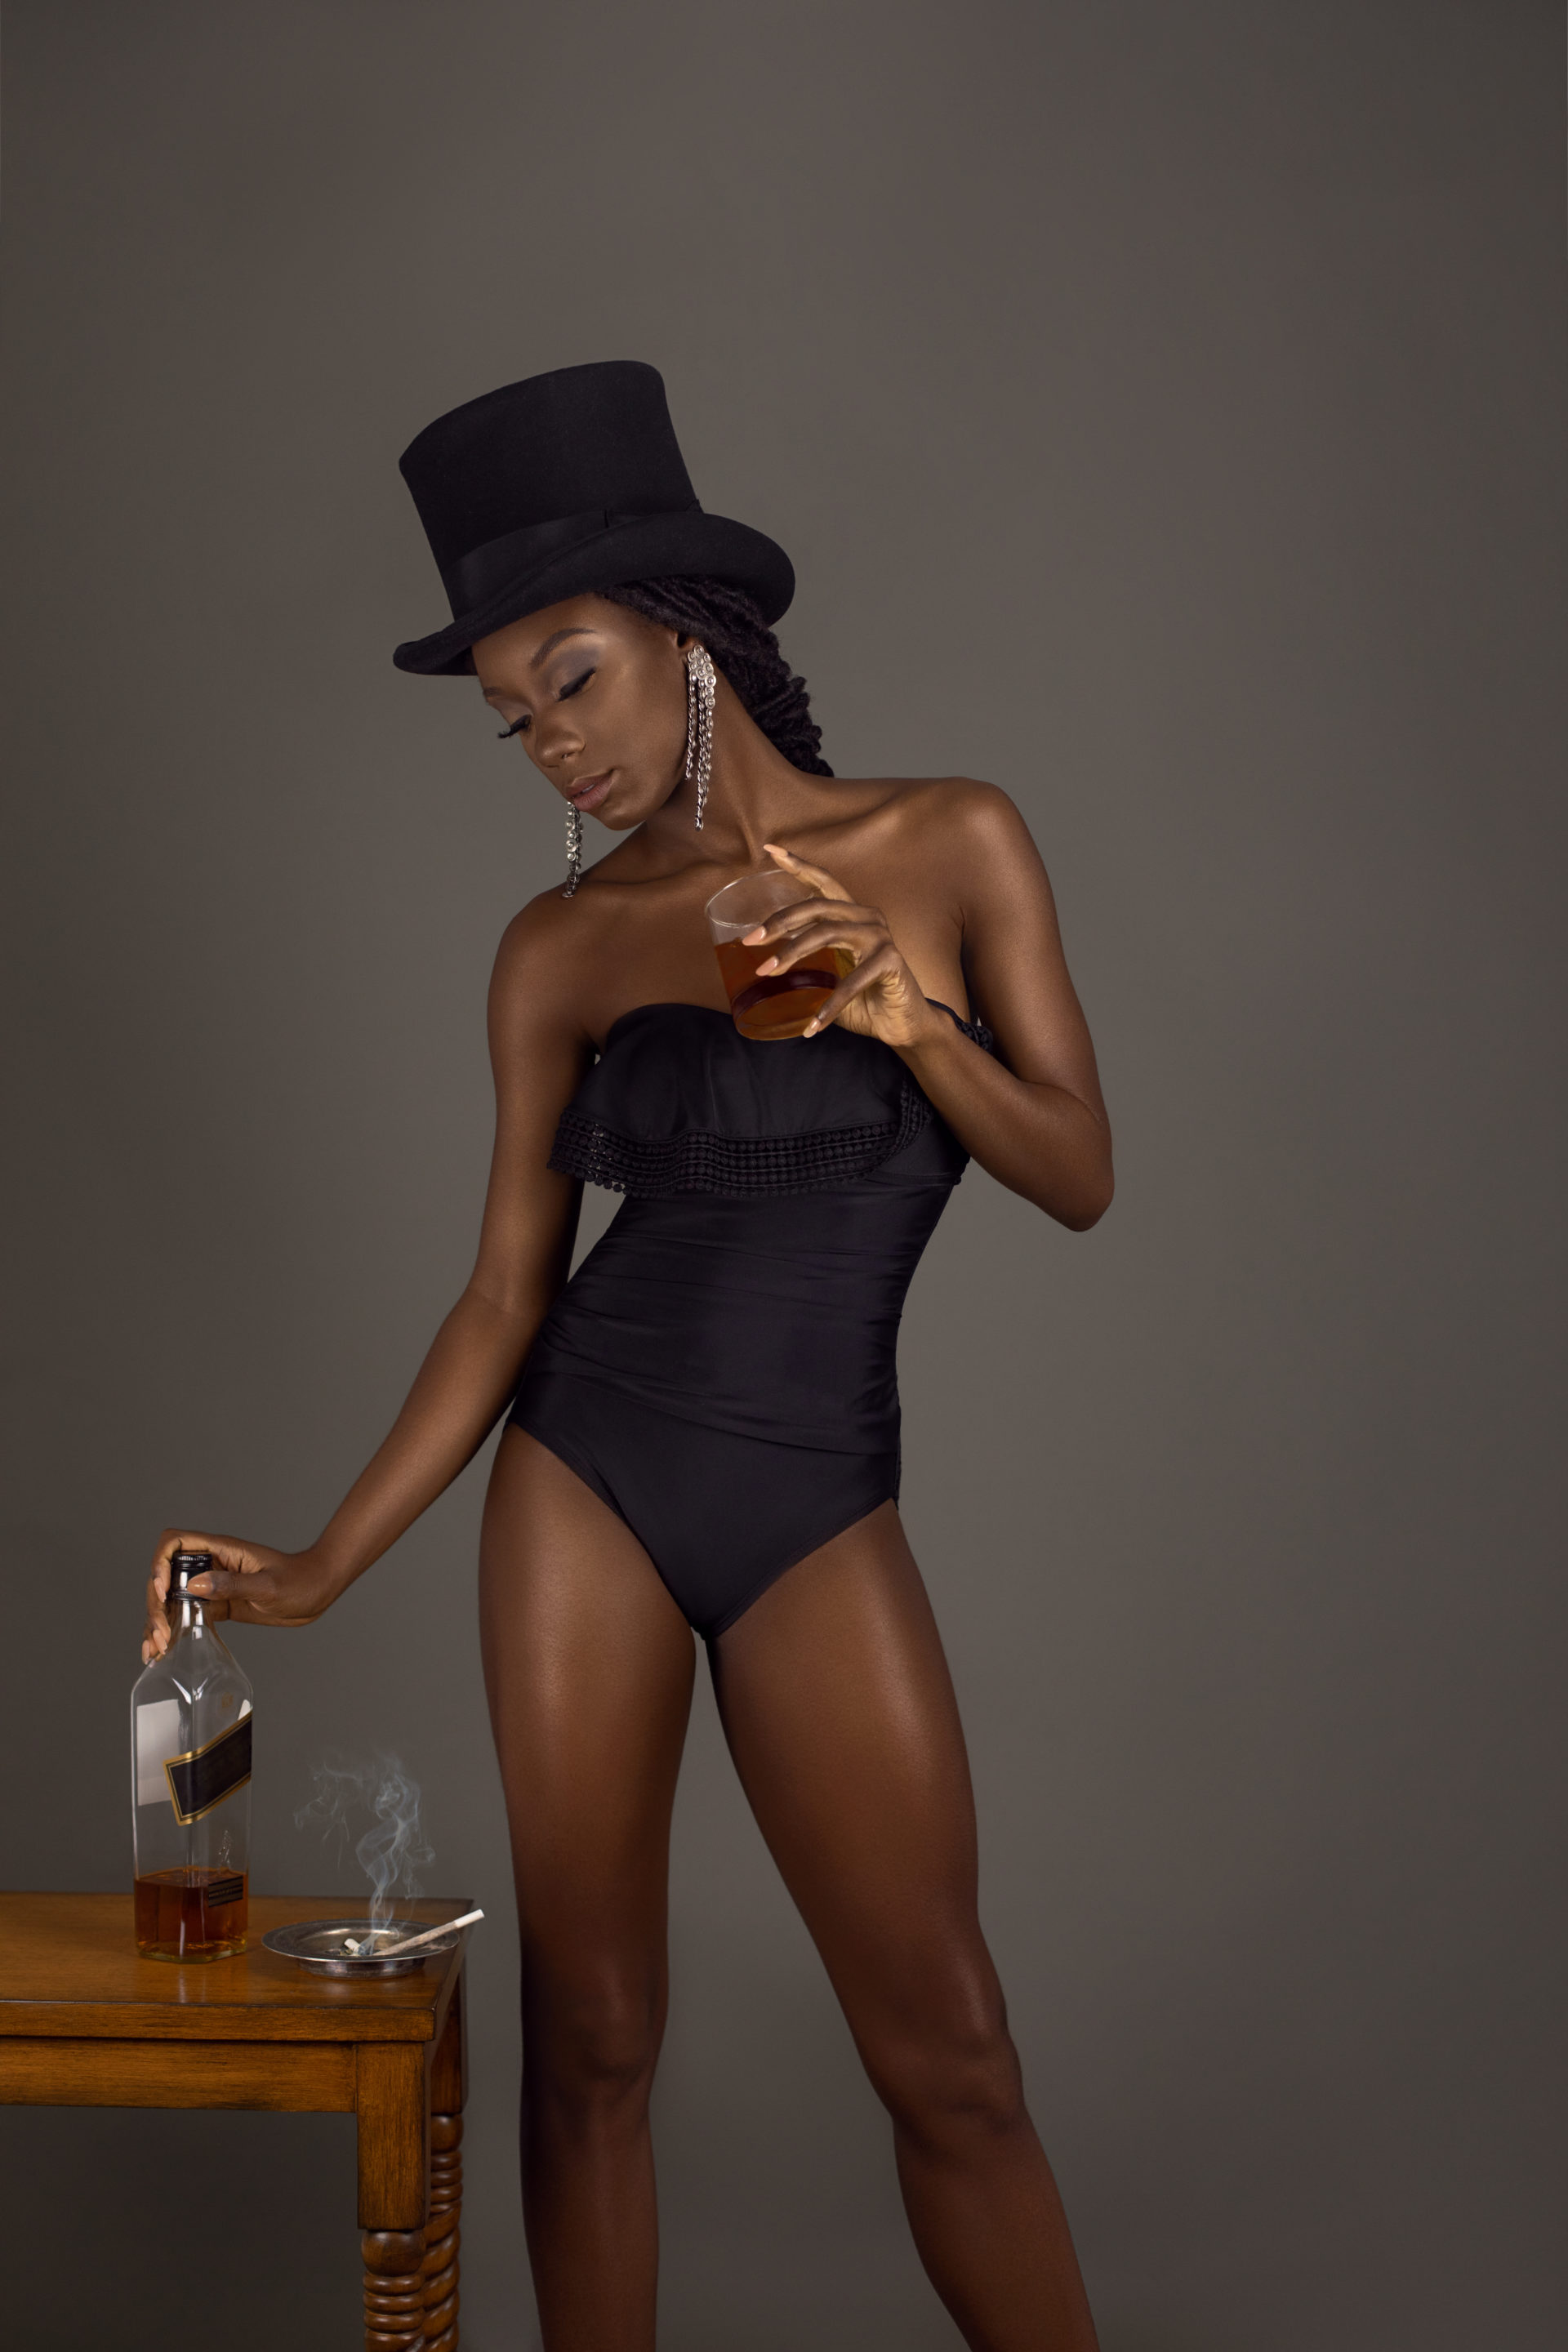 Whiskey Drinking Seductive Black Lady With Top Hat